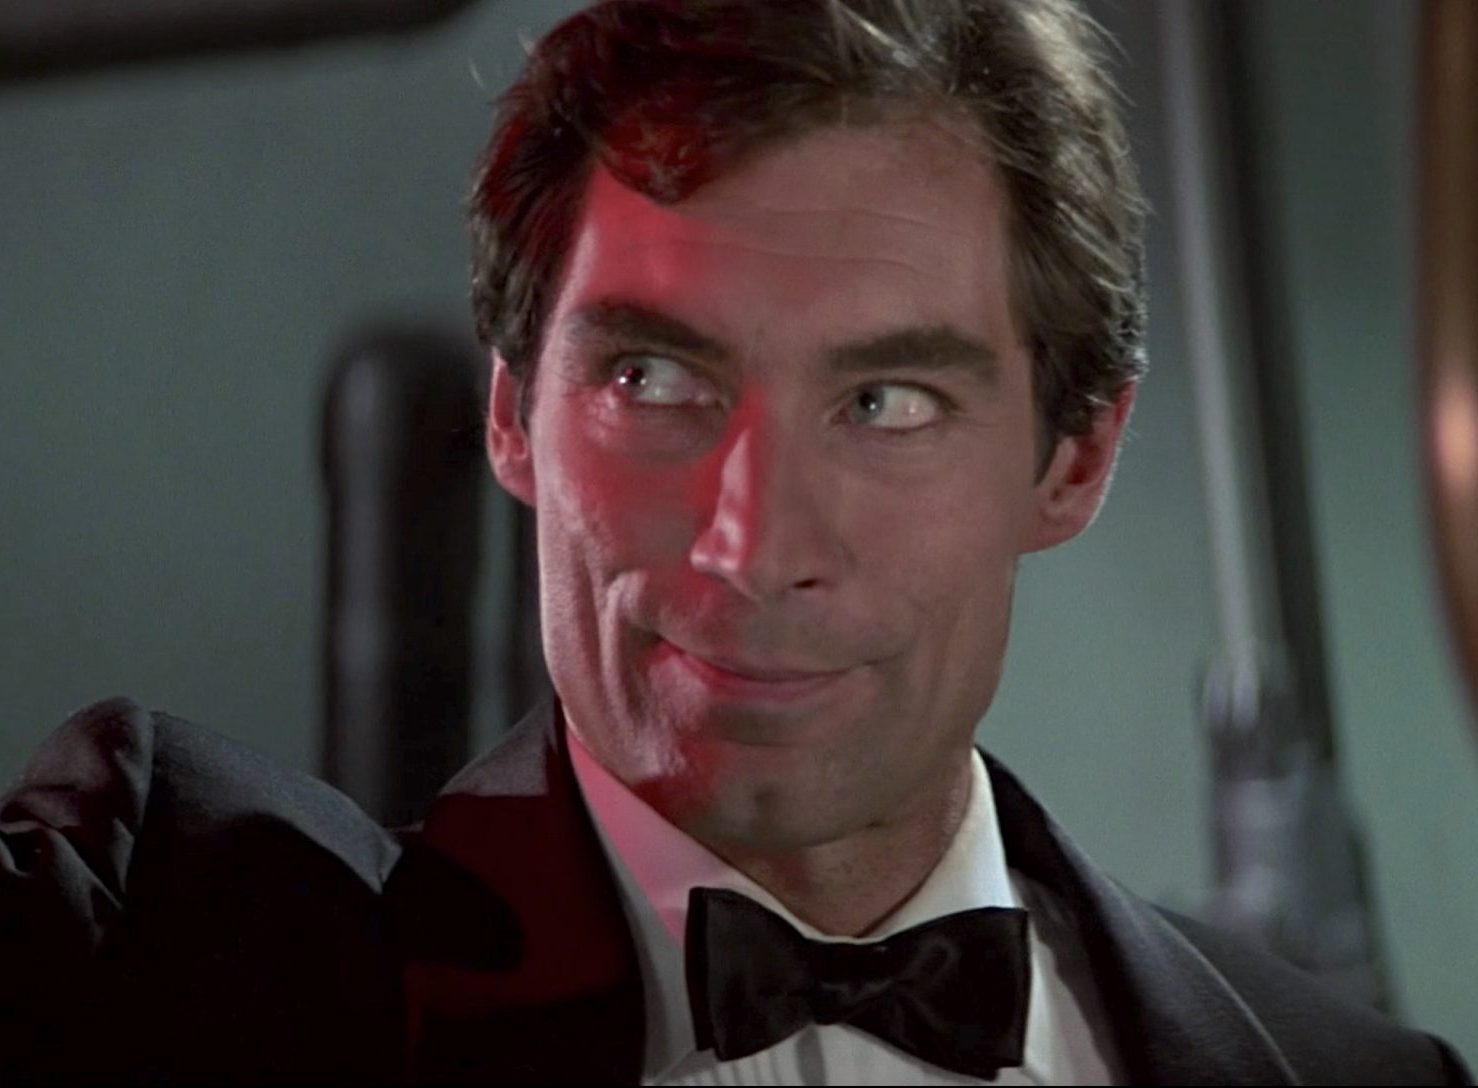 tld2shawltux cl1 tie scaled e1622549608919 20 Reasons Why Timothy Dalton Was Probably The Best James Bond Ever